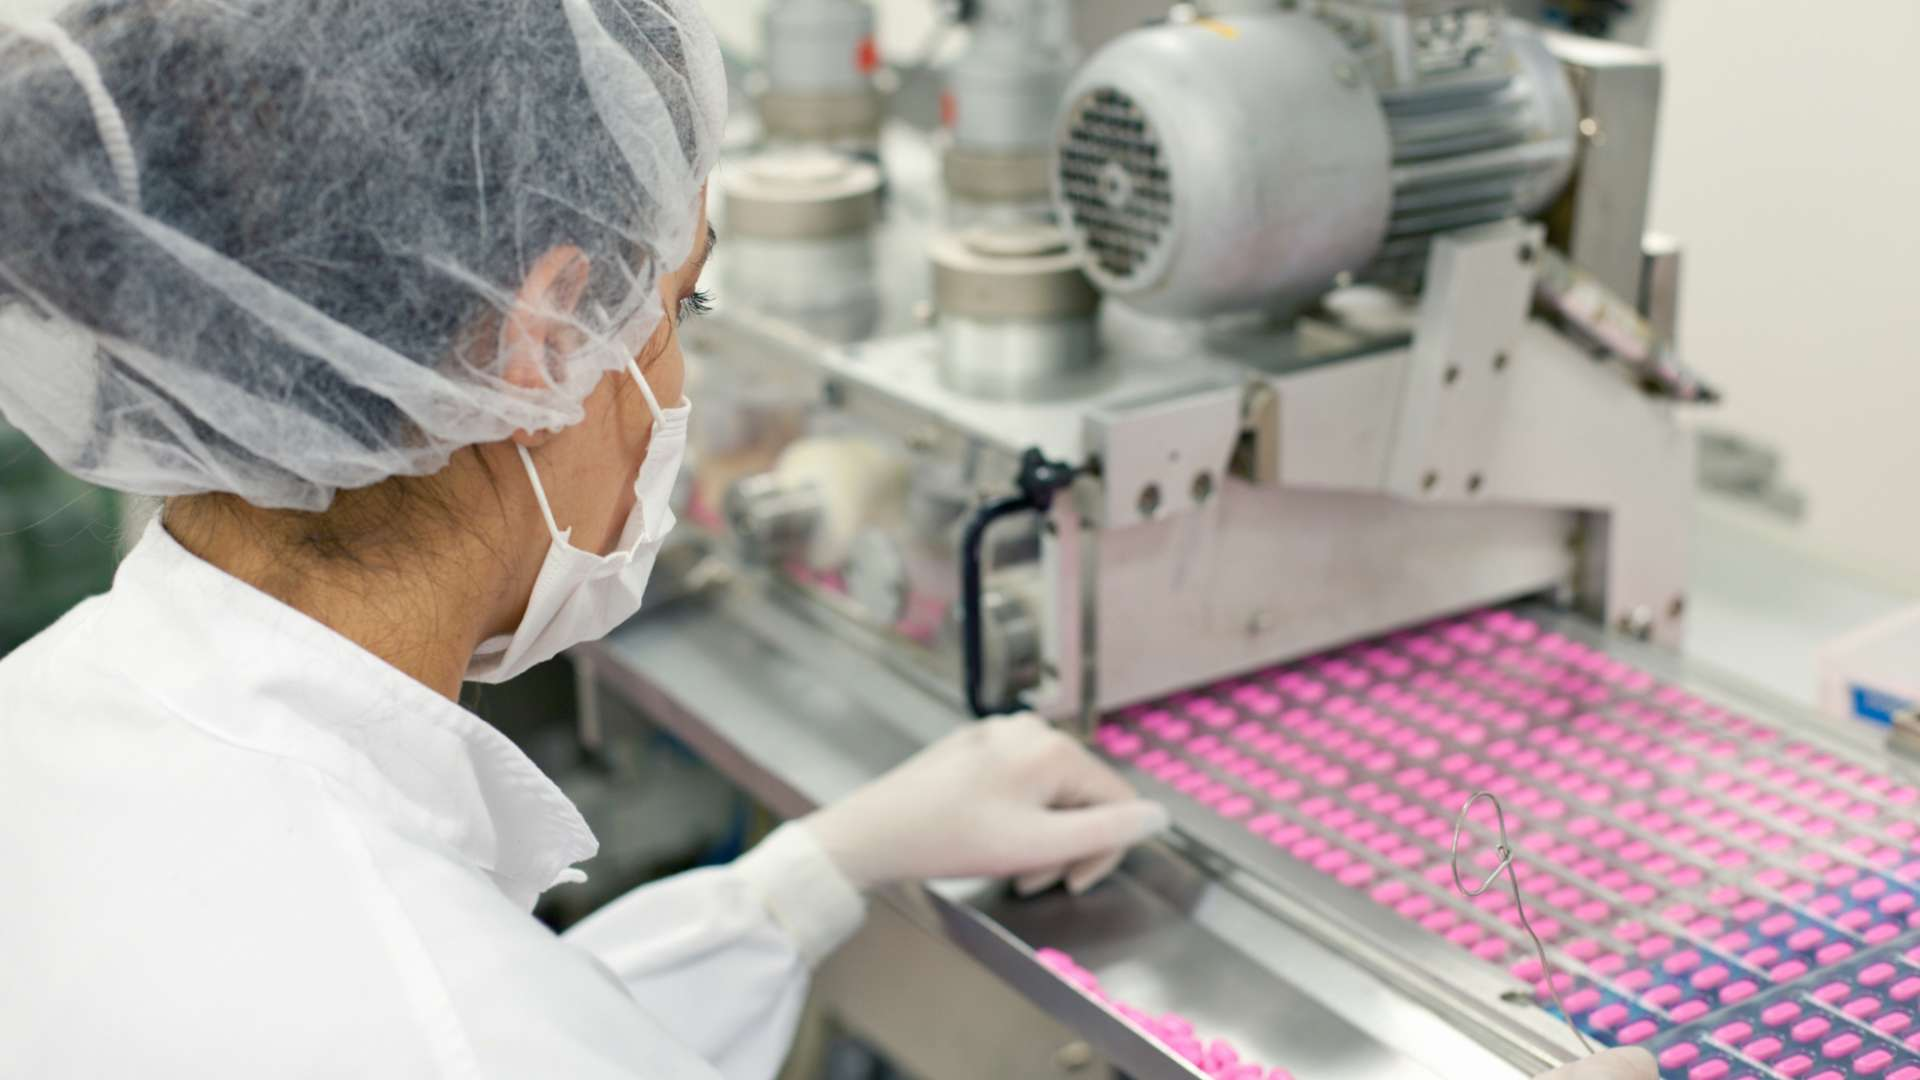 A woman working in a pharmaceutical manufacturing plant